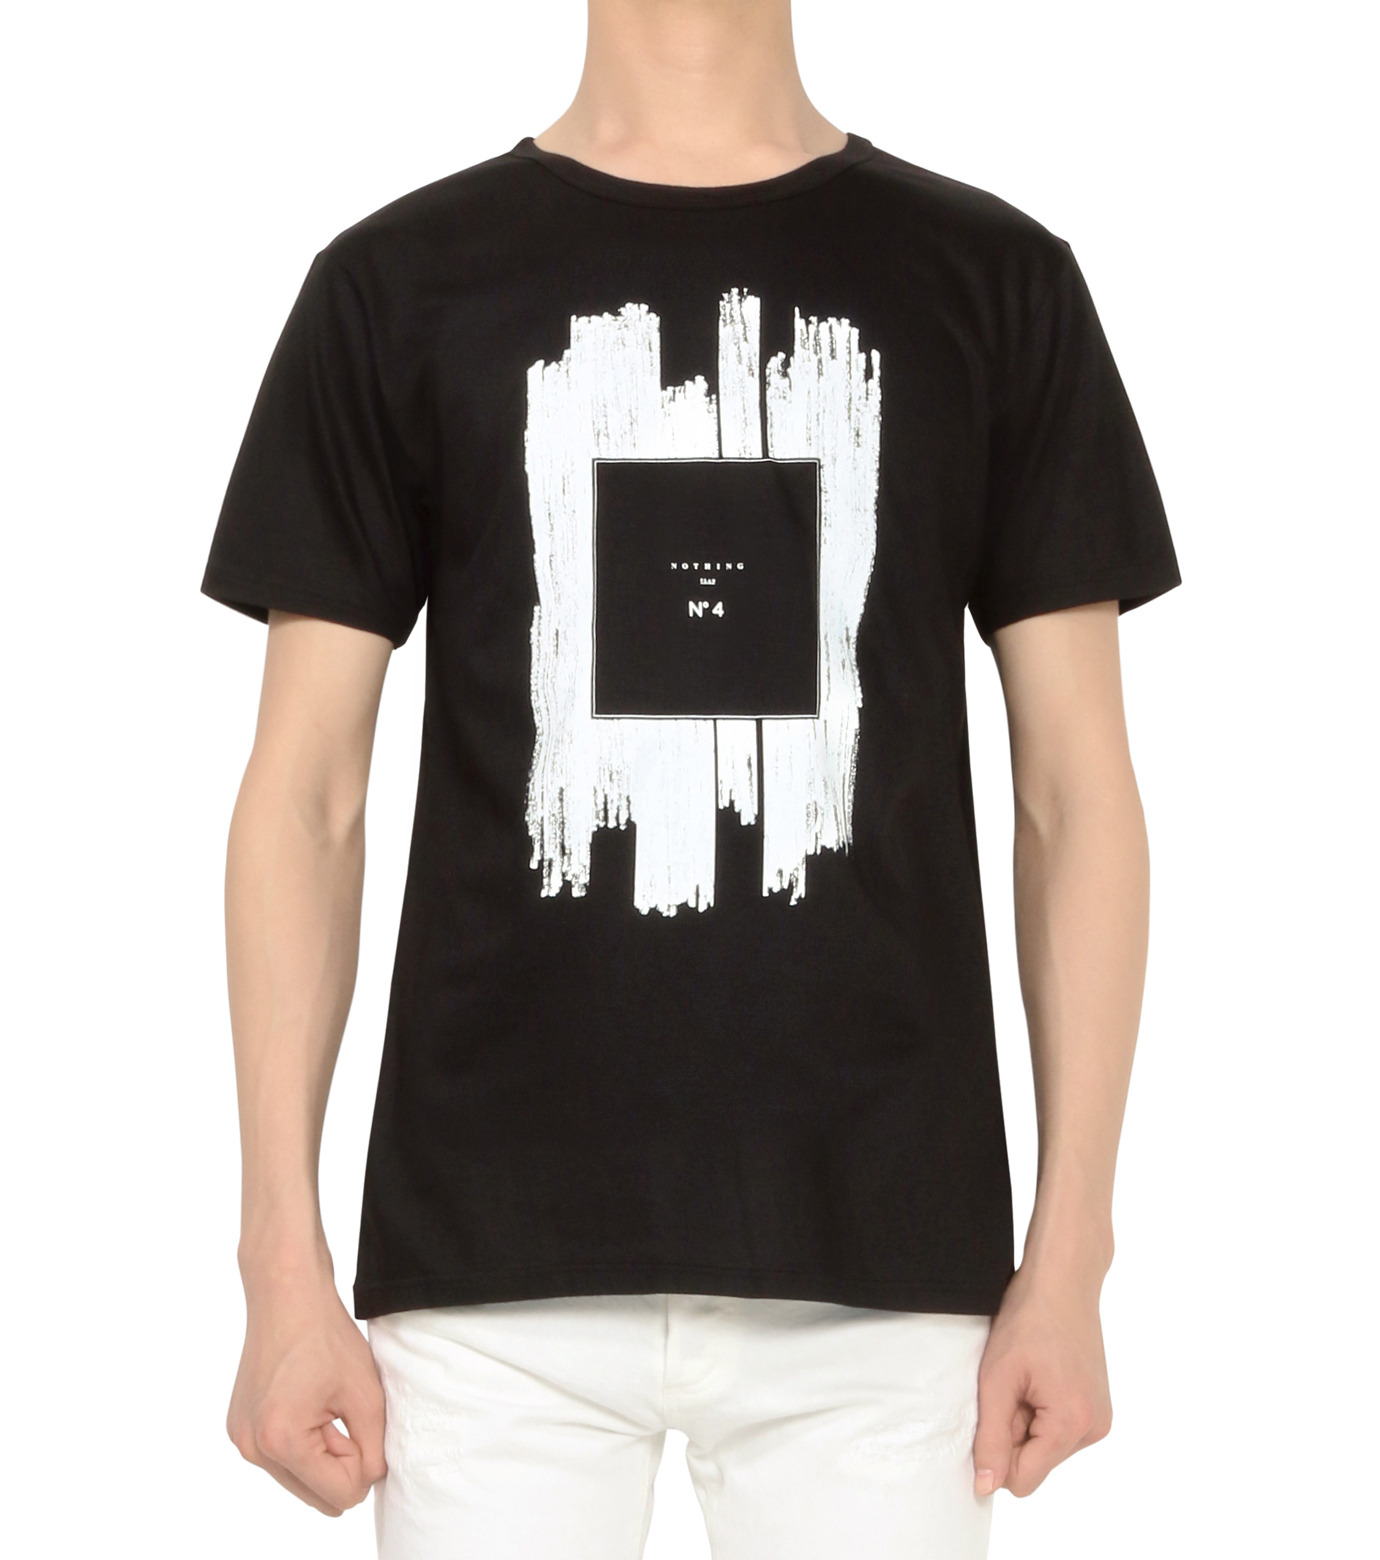 HL HEDDIE LOVU(エイチエル・エディールーヴ)のNOTHING pt TEE-BLACK(カットソー/cut and sewn)-18S92011-13 拡大詳細画像2